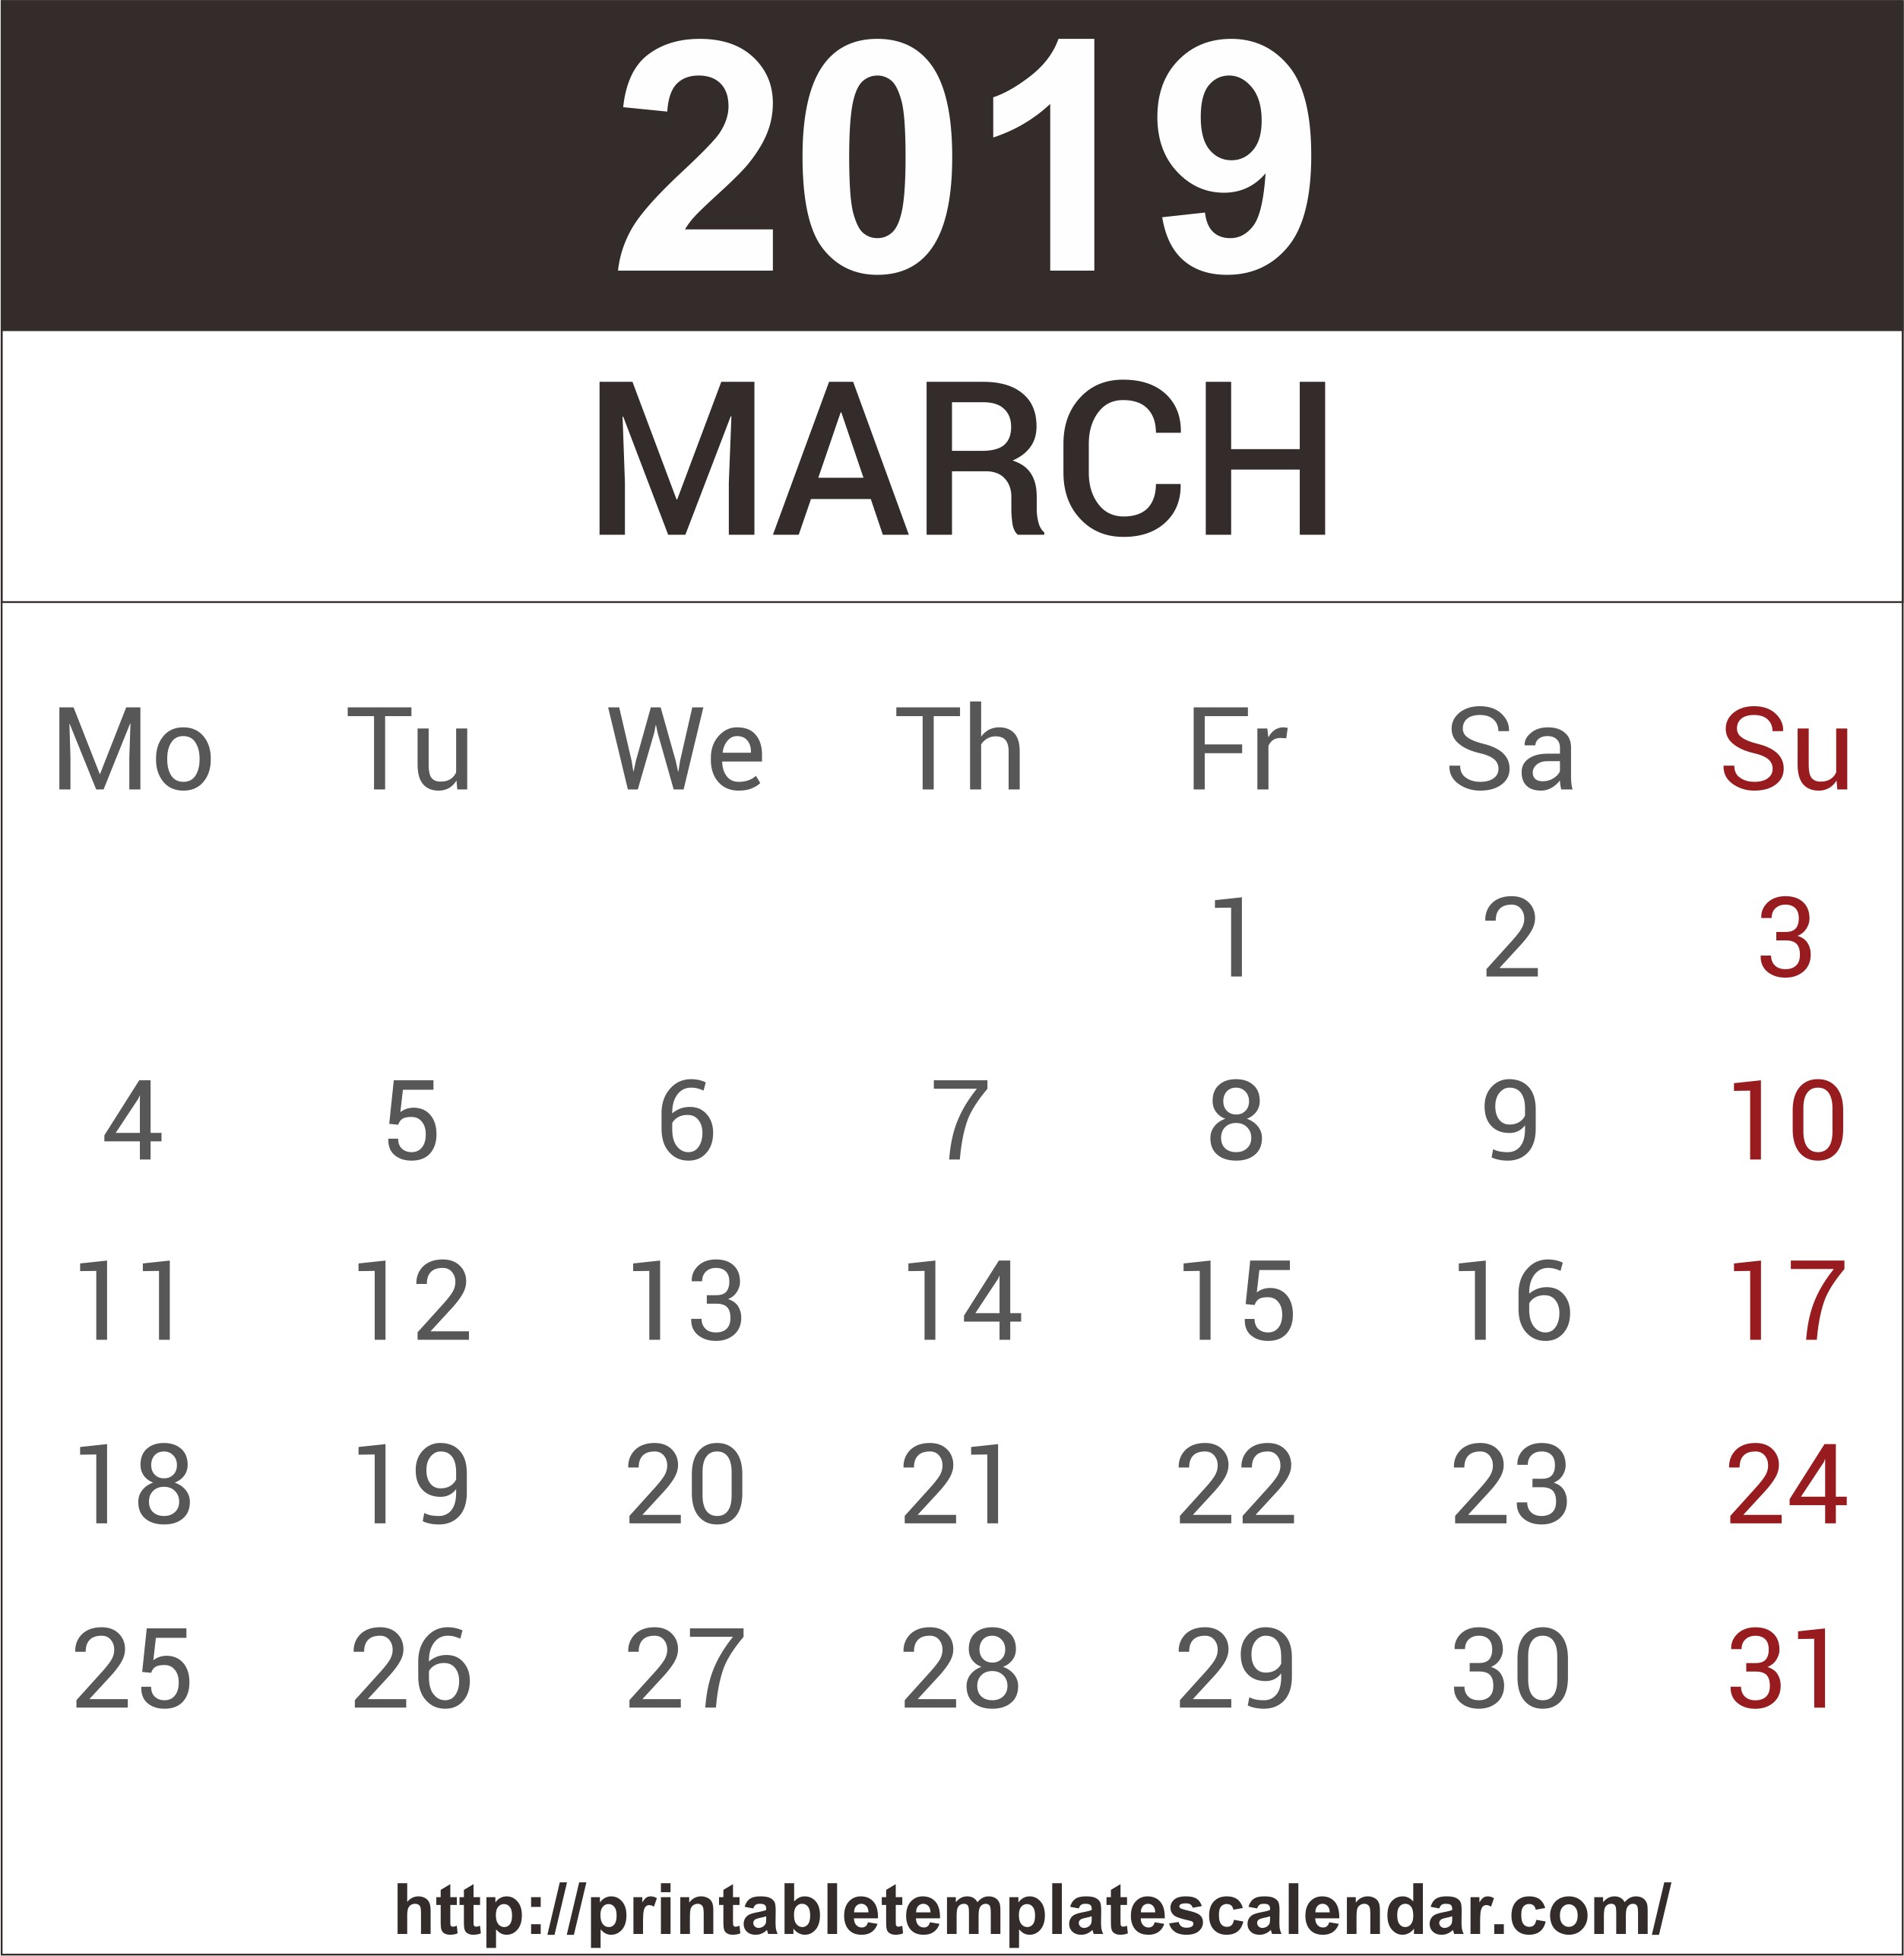 March Calendar 2019 Más Recientes March 2019 Printable Calendar Templates Pdf Excel Word Of March Calendar 2019 Más Recientes March 2019 Wall Calendar Colorful Sketch Horizontal Template Letter